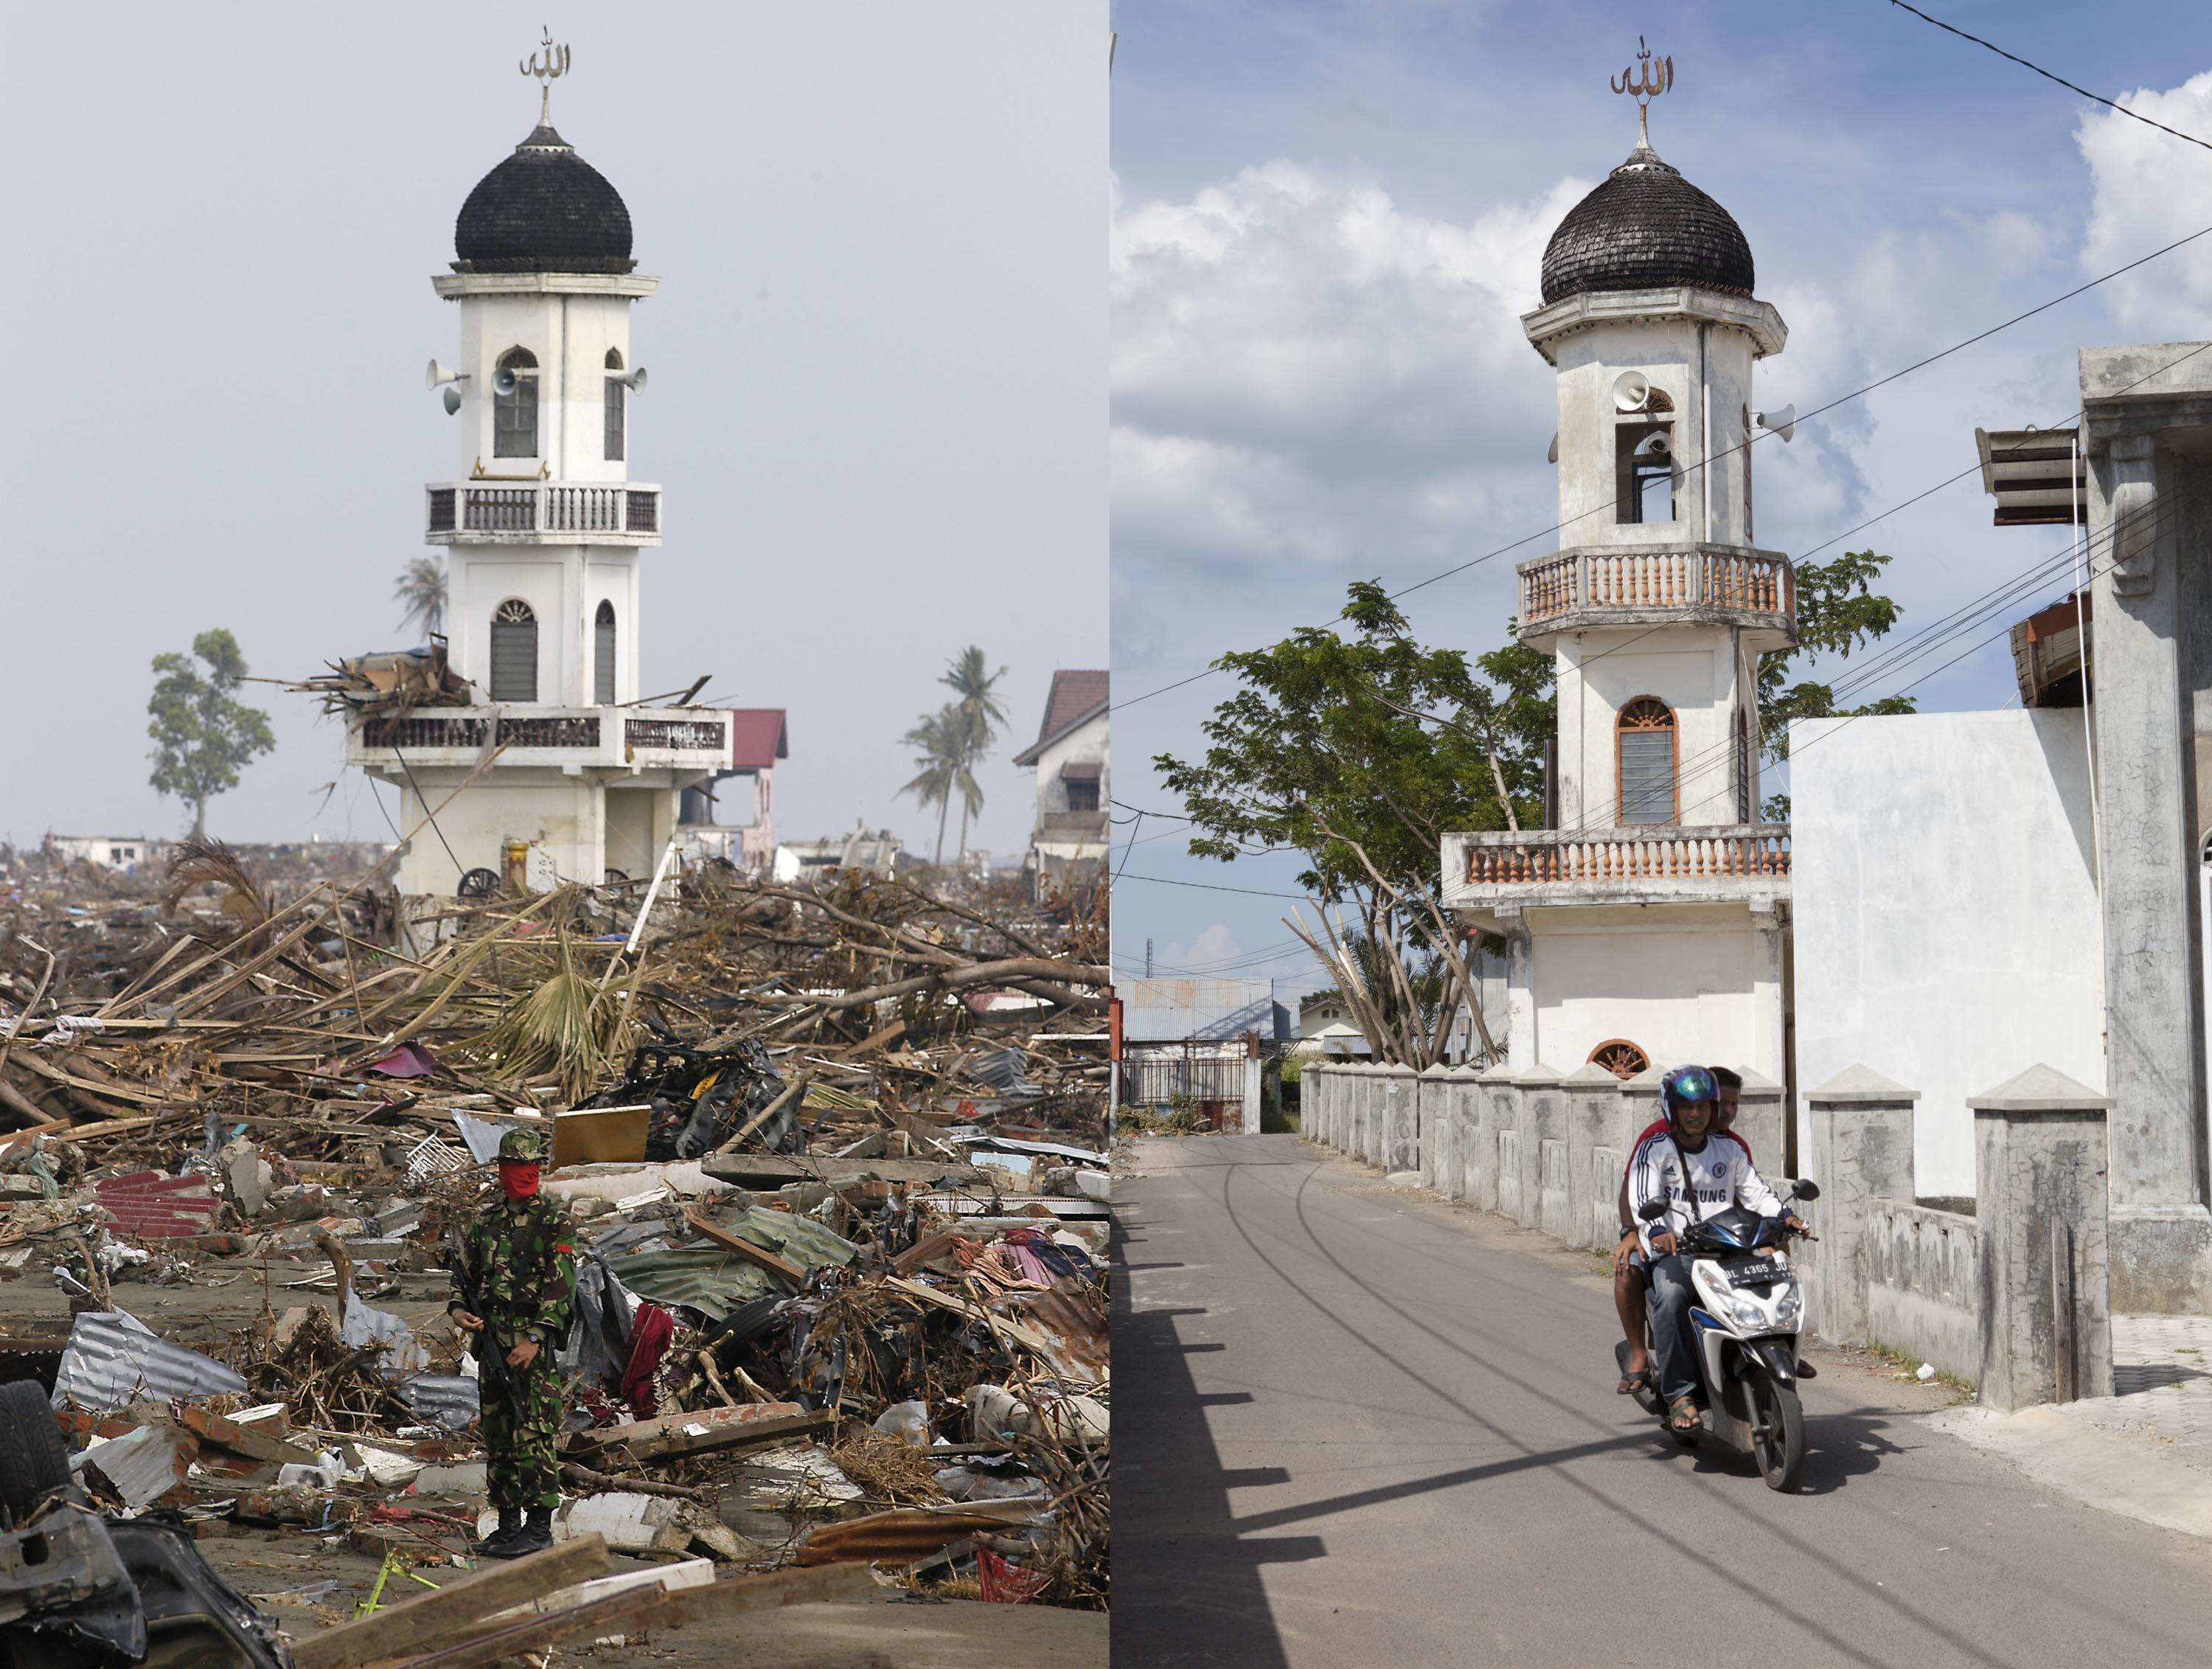 Indian Ocean Tsunami Anniversary Banda Aceh In Photos Then And Now Shows A Place Destroyed And Rebuilt